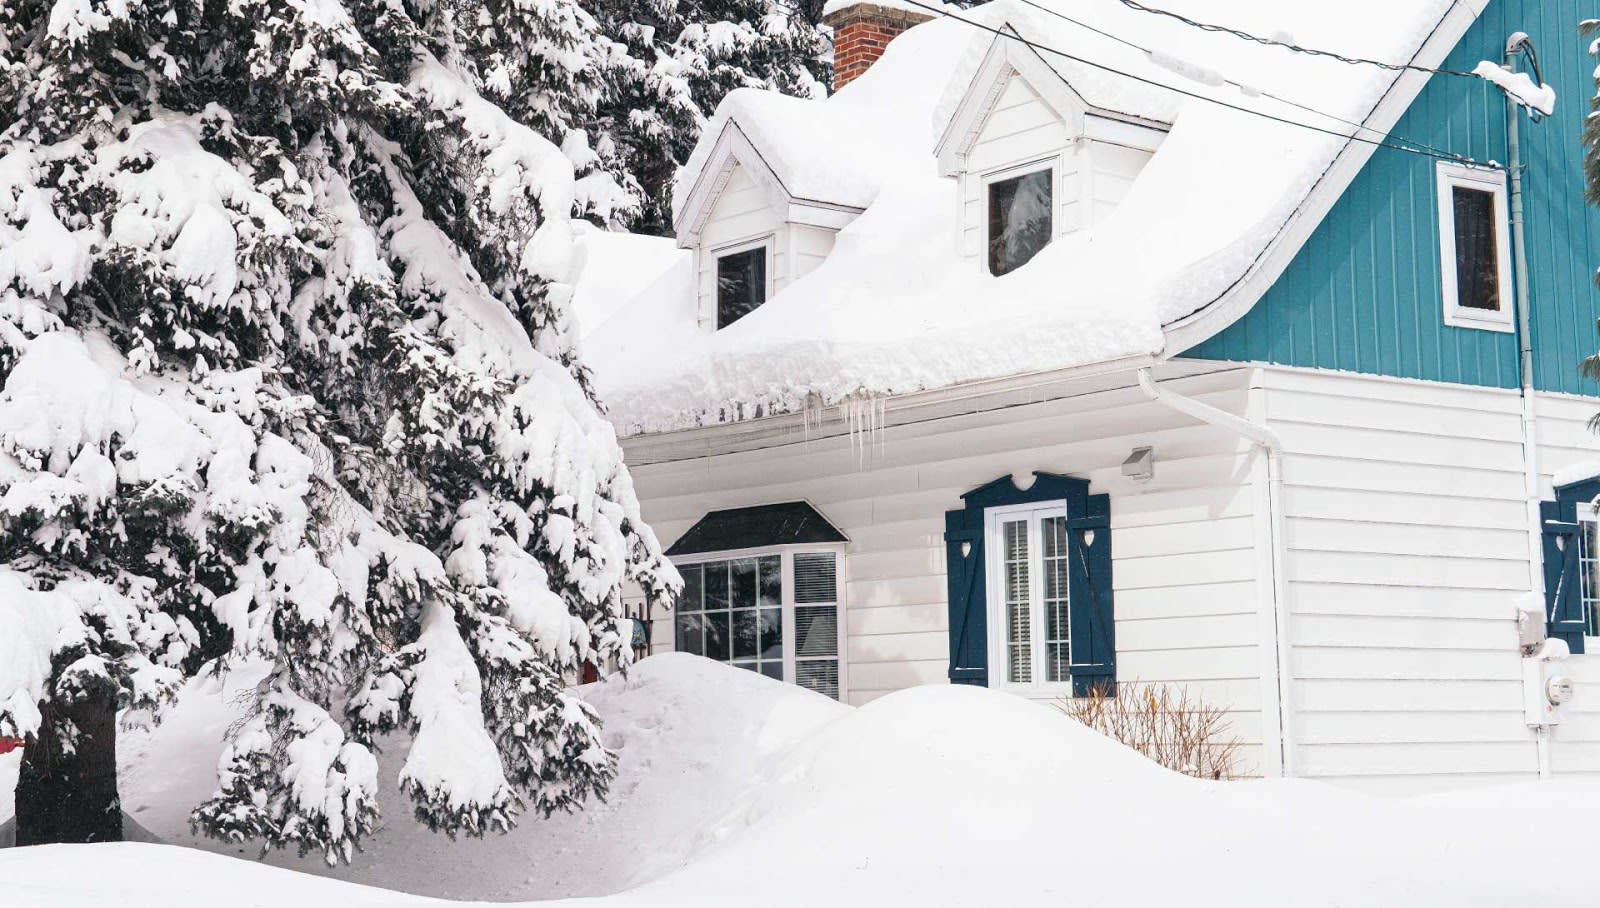 4 Easy Ways to Winterize Your Vacation Rental with Confidence